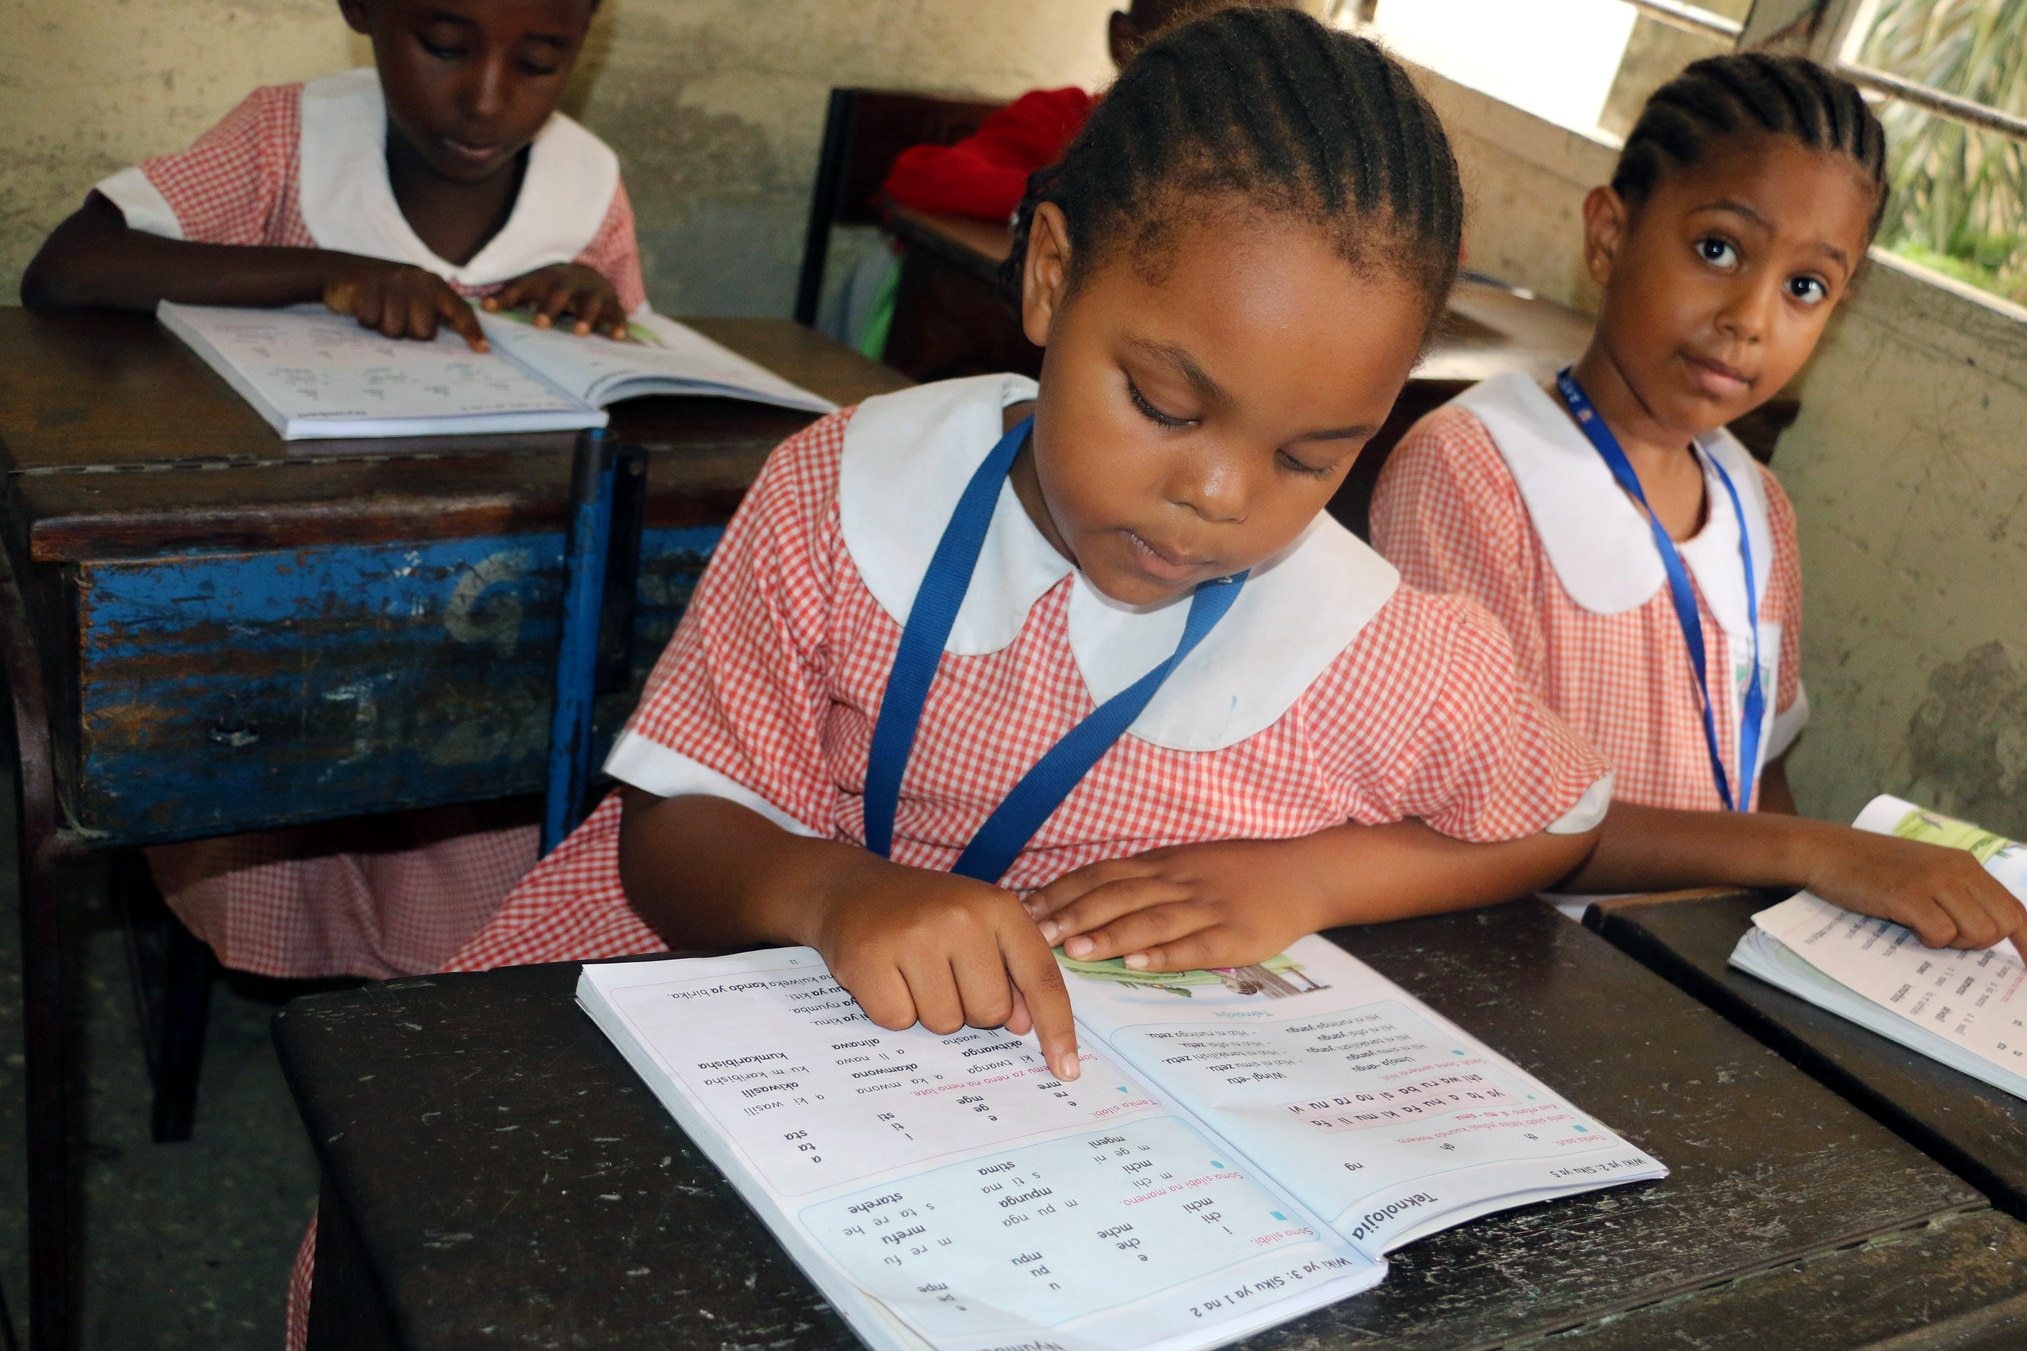 Three young girls in school uniforms, seated at desks with notebooks (USAID)